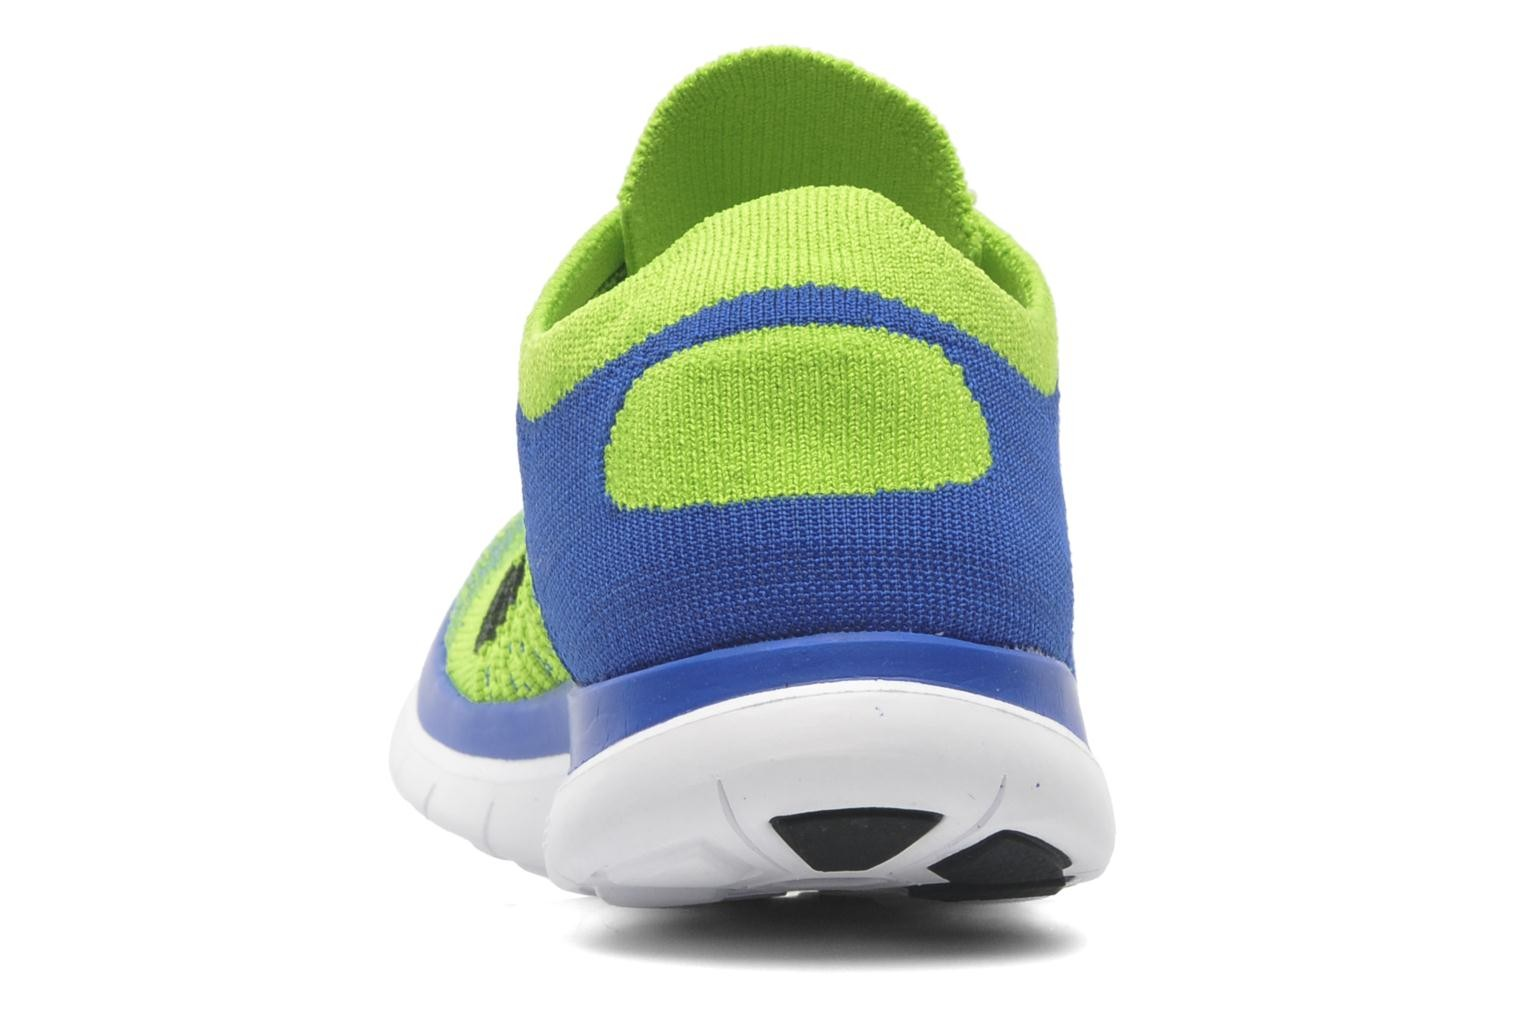 hot sale online b5215 7a0c3 ... Nike Free 4.0 Flyknit Game Royal Black-Electric Green-White Men s  Running Shoes ...